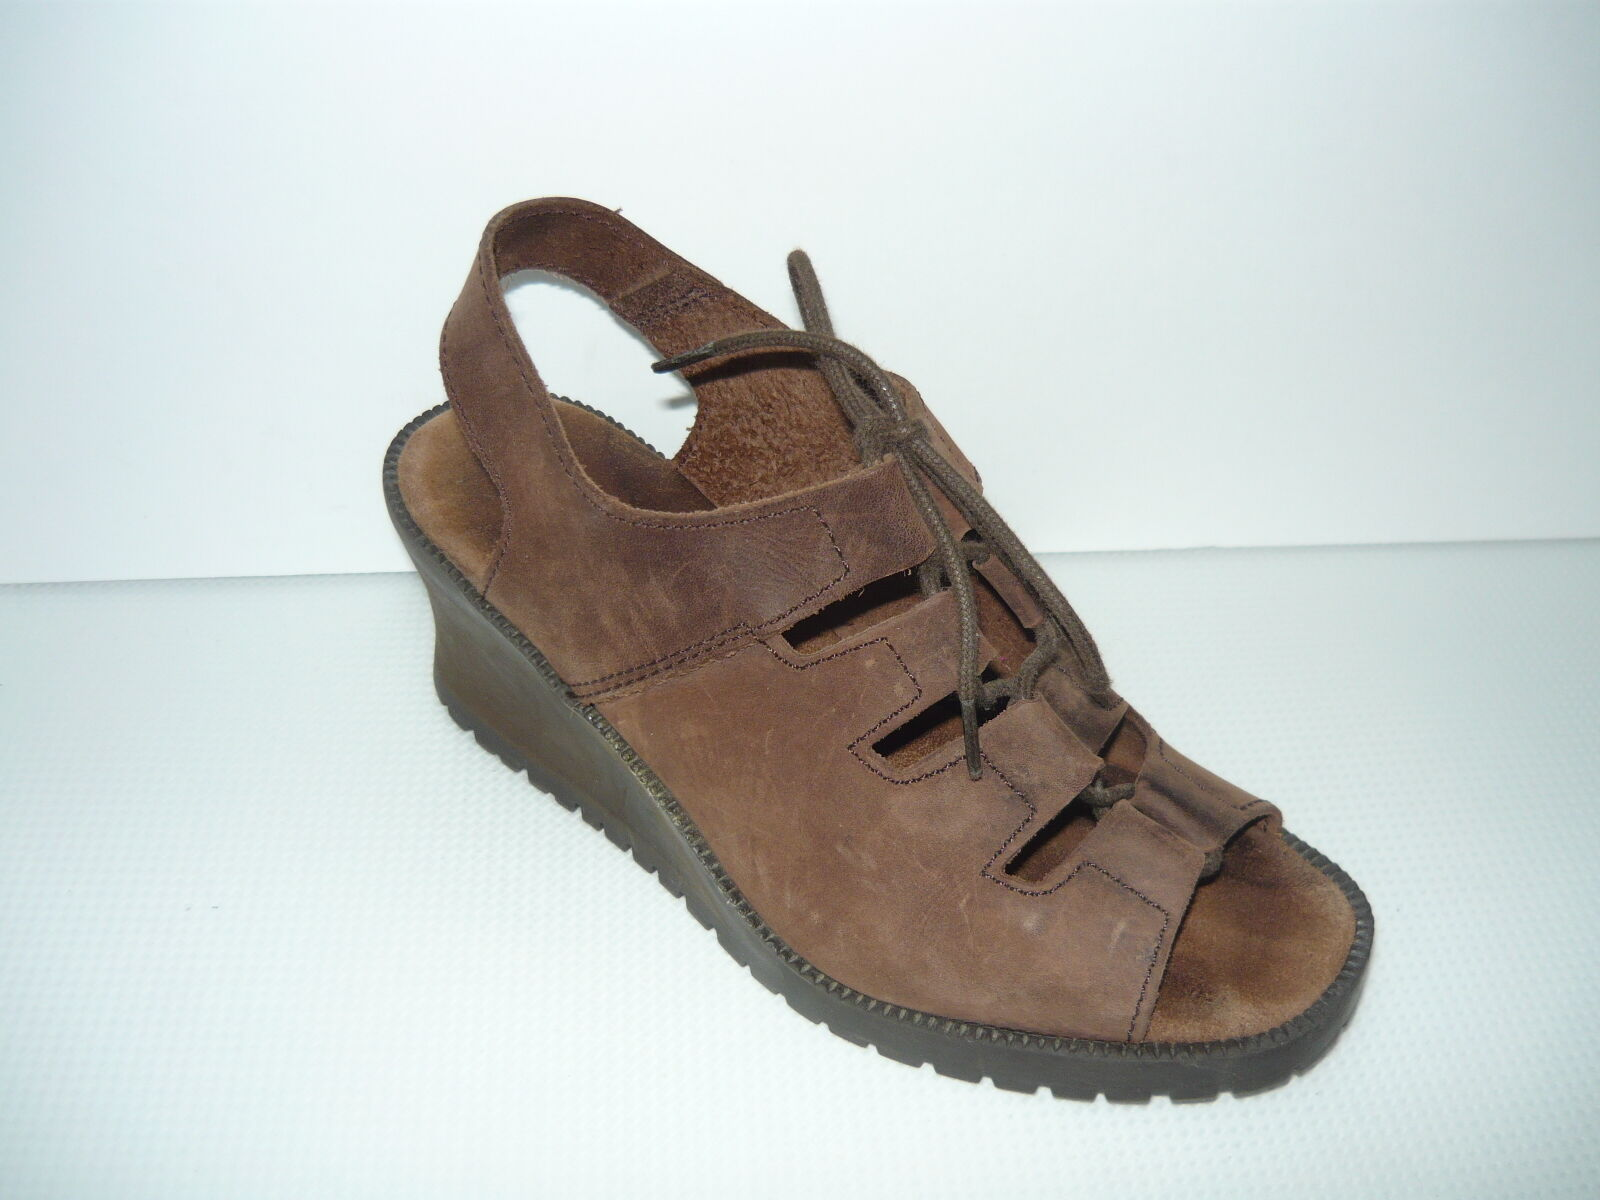 APOSTROPHE Brown Brown APOSTROPHE Leather Sandals Wedge Heel Womens Size 6.5 a87b12